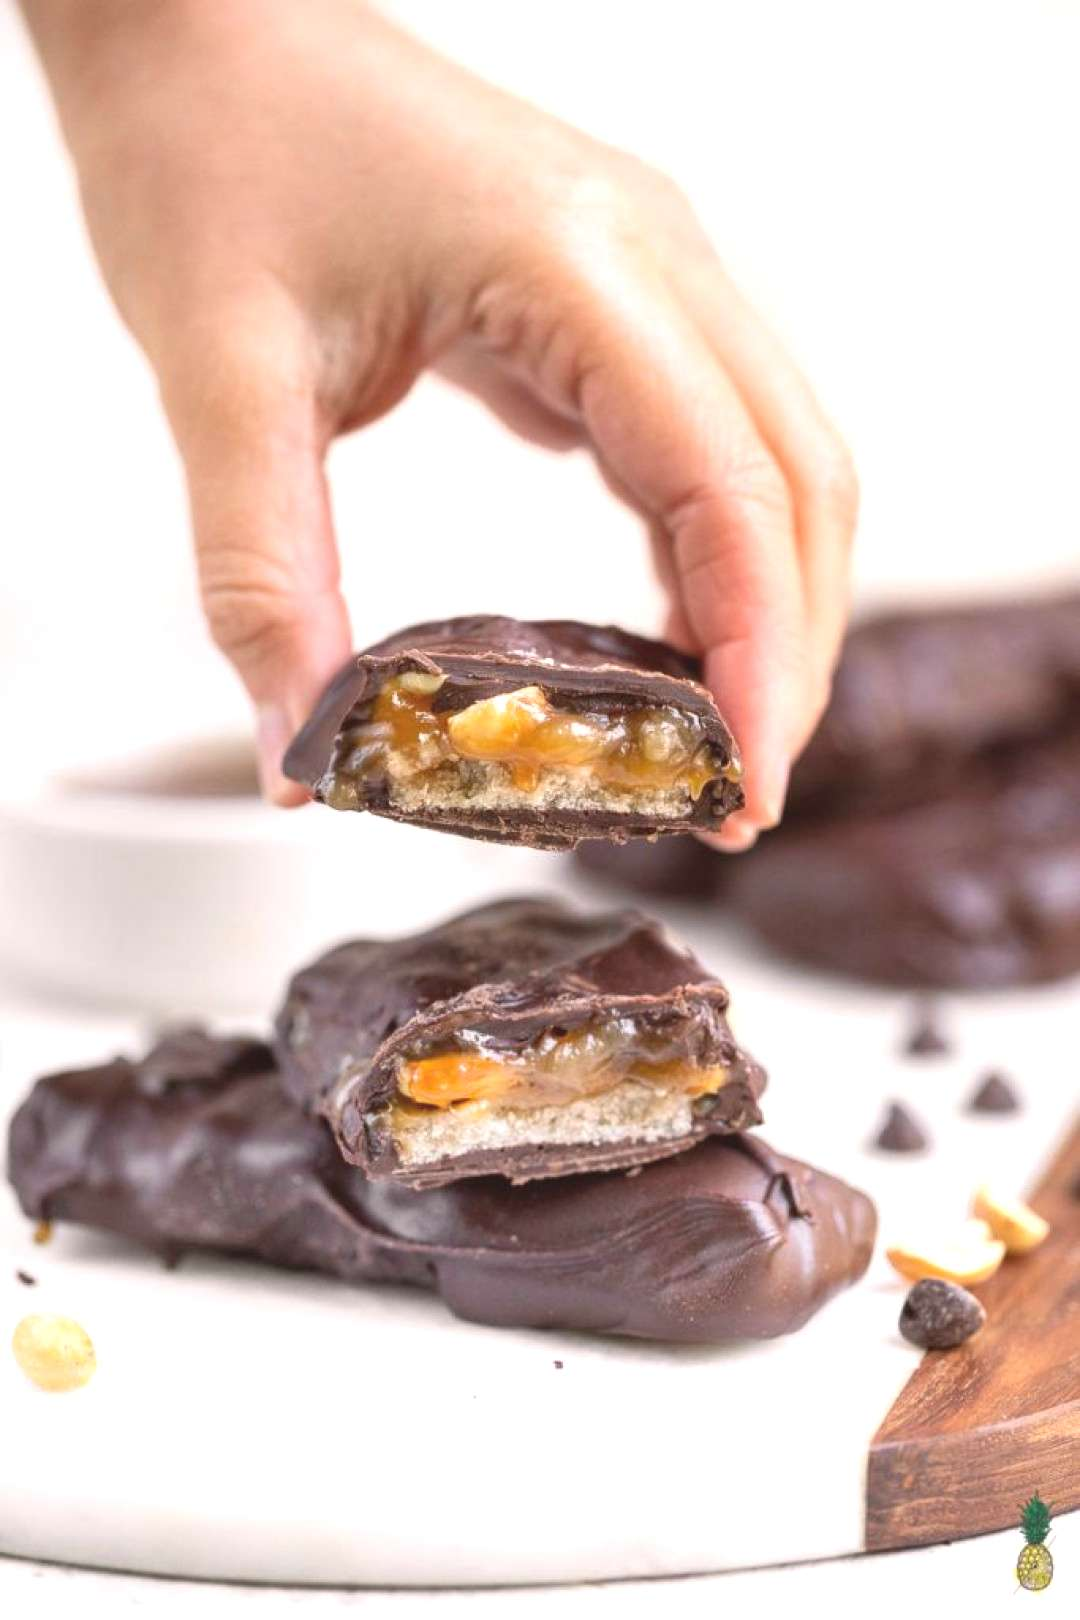 Learn how to make vegan snickers bars at home! Loaded with roasted peanuts, gluten-free nougat, rea